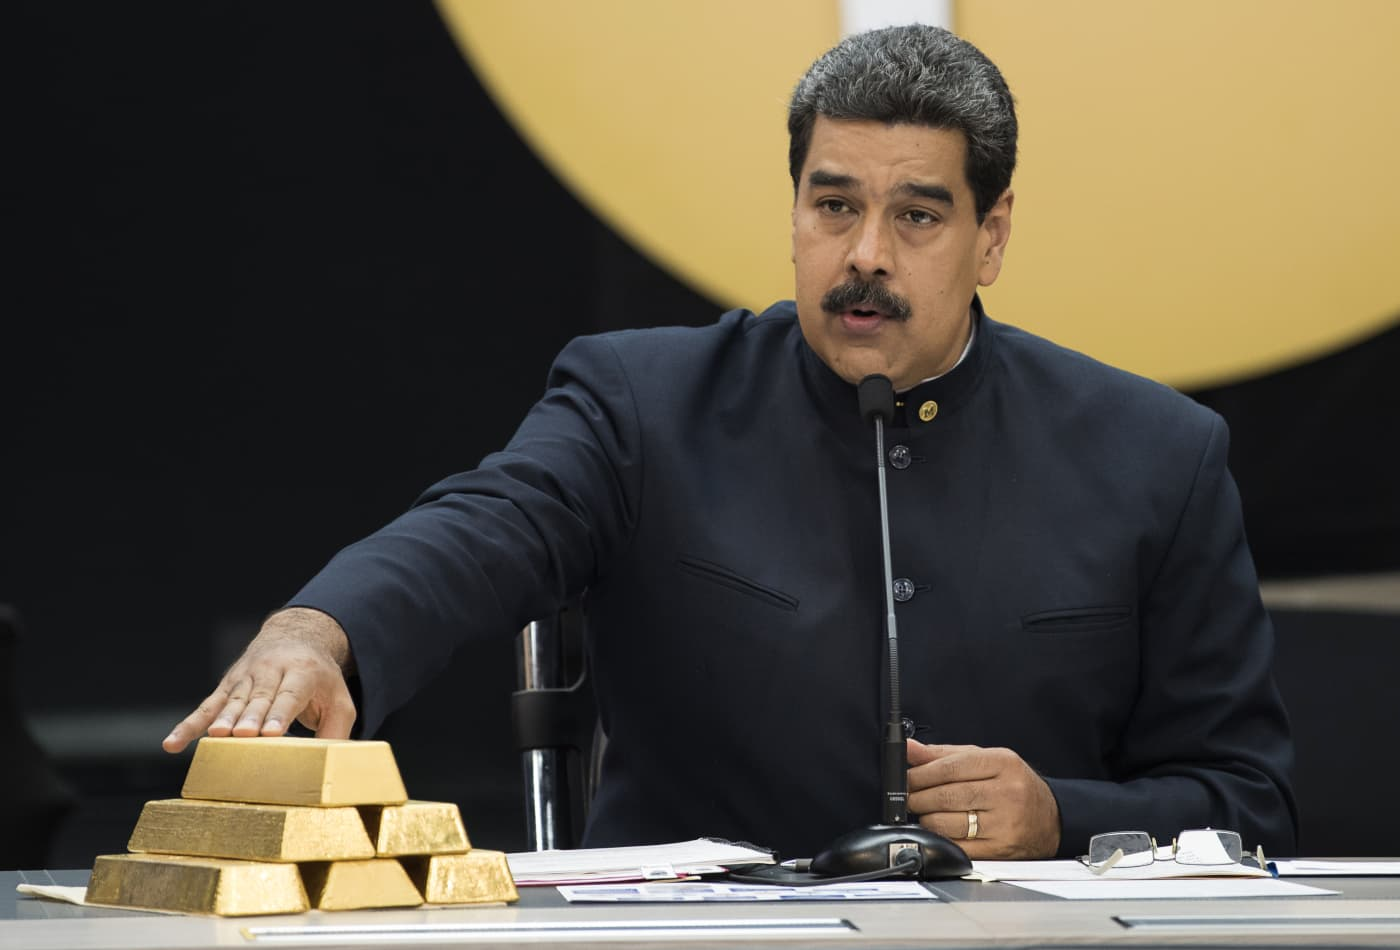 Forget oil: Here's why gold is key to Venezuela's crisis-stricken government